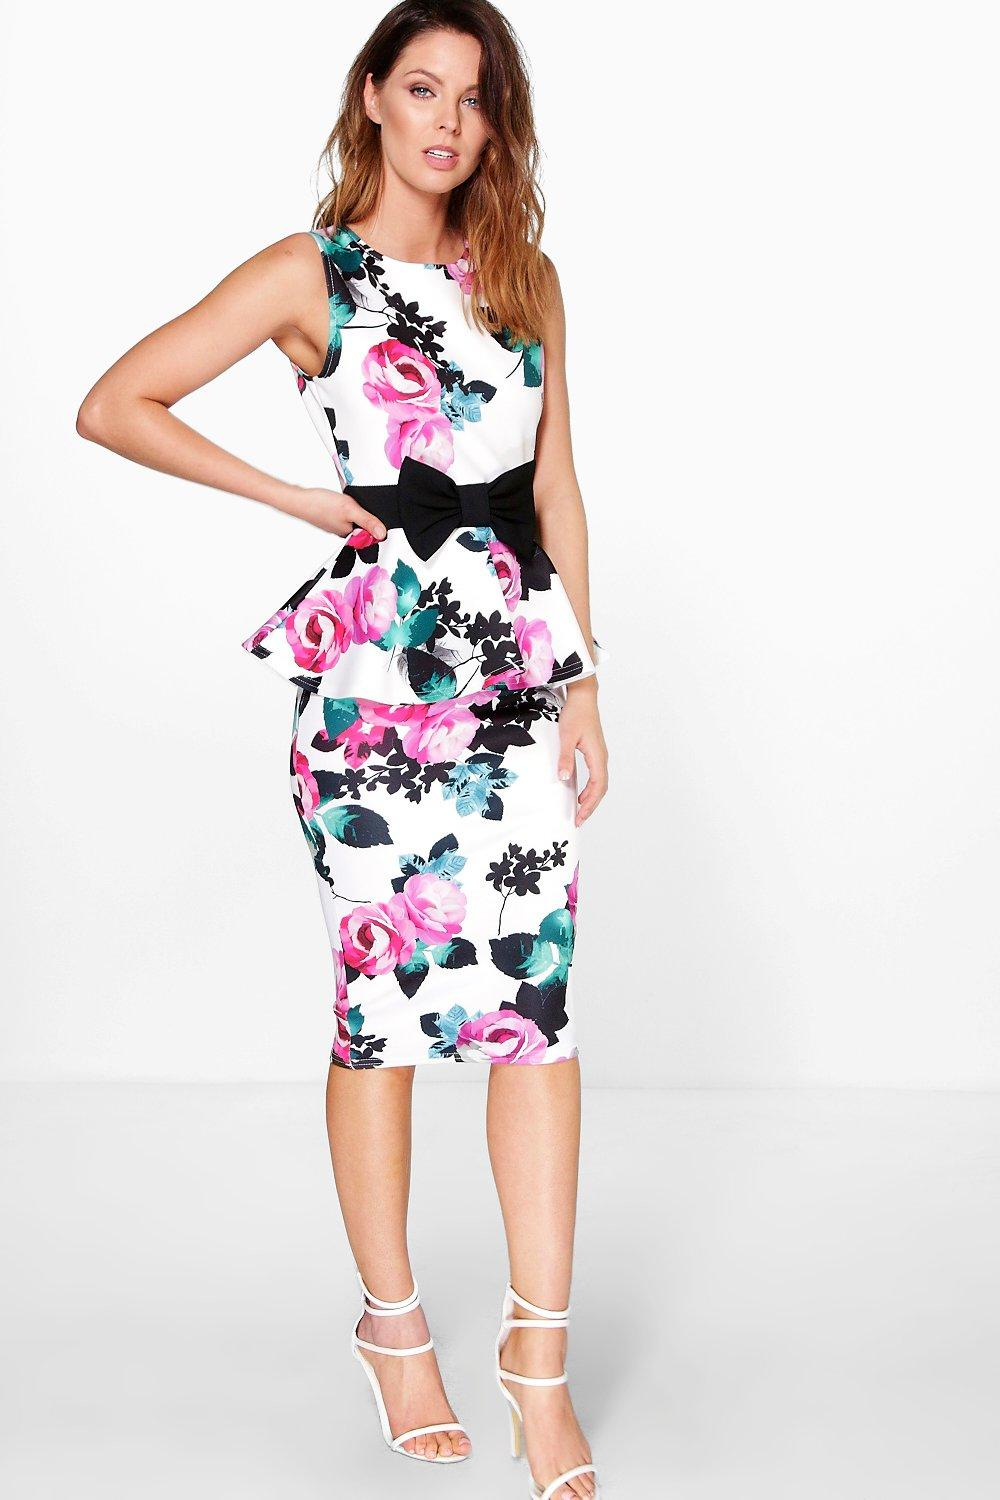 Free shipping Floral Peplum Tankini Swimsuit BLACK S under $ in Tankinis online store. Best Floral Dresses Online and Floral Print Summer Dress Online for sale at trueufilv3f.ga Fashion Clothing Site with greatest number of Latest casual style Dresses as well as other categories such as men, kids, swimwear at a affordable price.